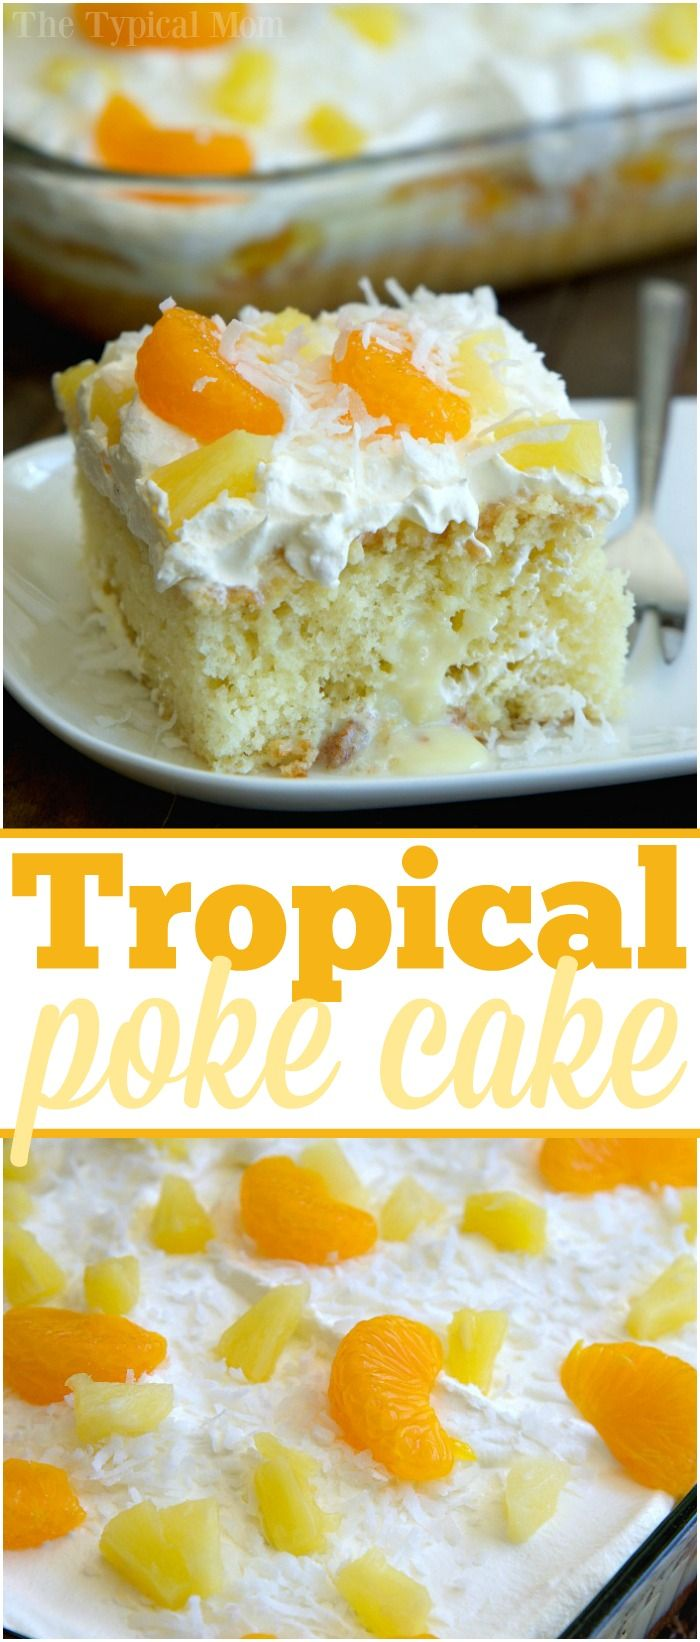 You have got to try this tropical poke cake! Moist with orange, pineapple, and coconut on top. Great Summer or Spring cake that's so pretty! Easy recipe. via @thetypicalmom